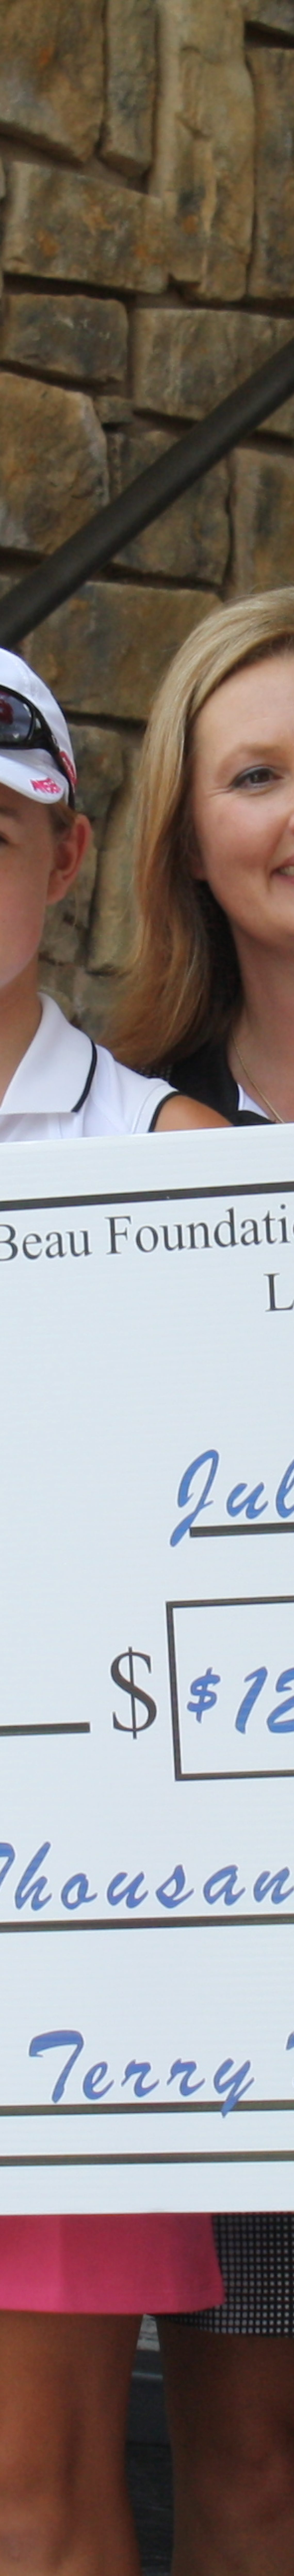 Beau Foundation commemorates 10 years with $125,000 gift to Community Clinic